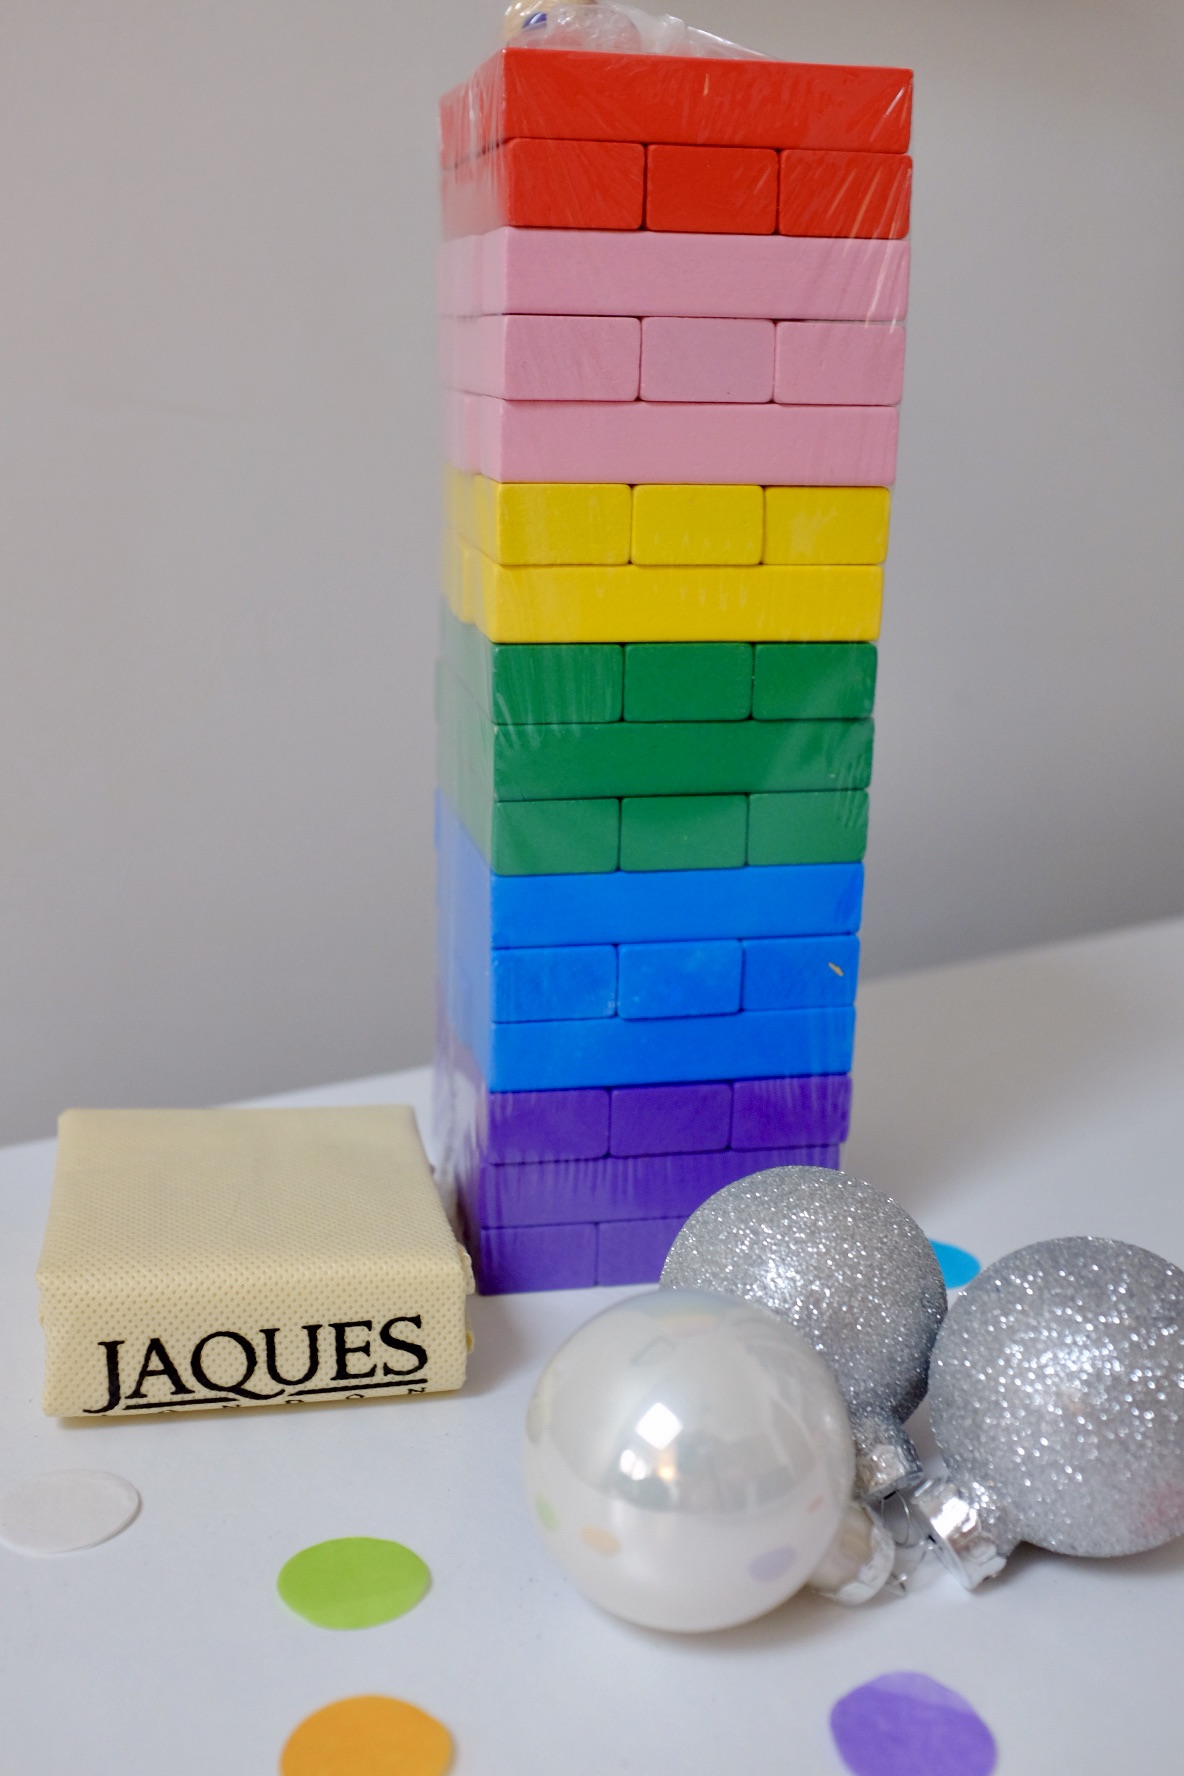 rainbow gift ideas - rainbow tumble tower from Jaques